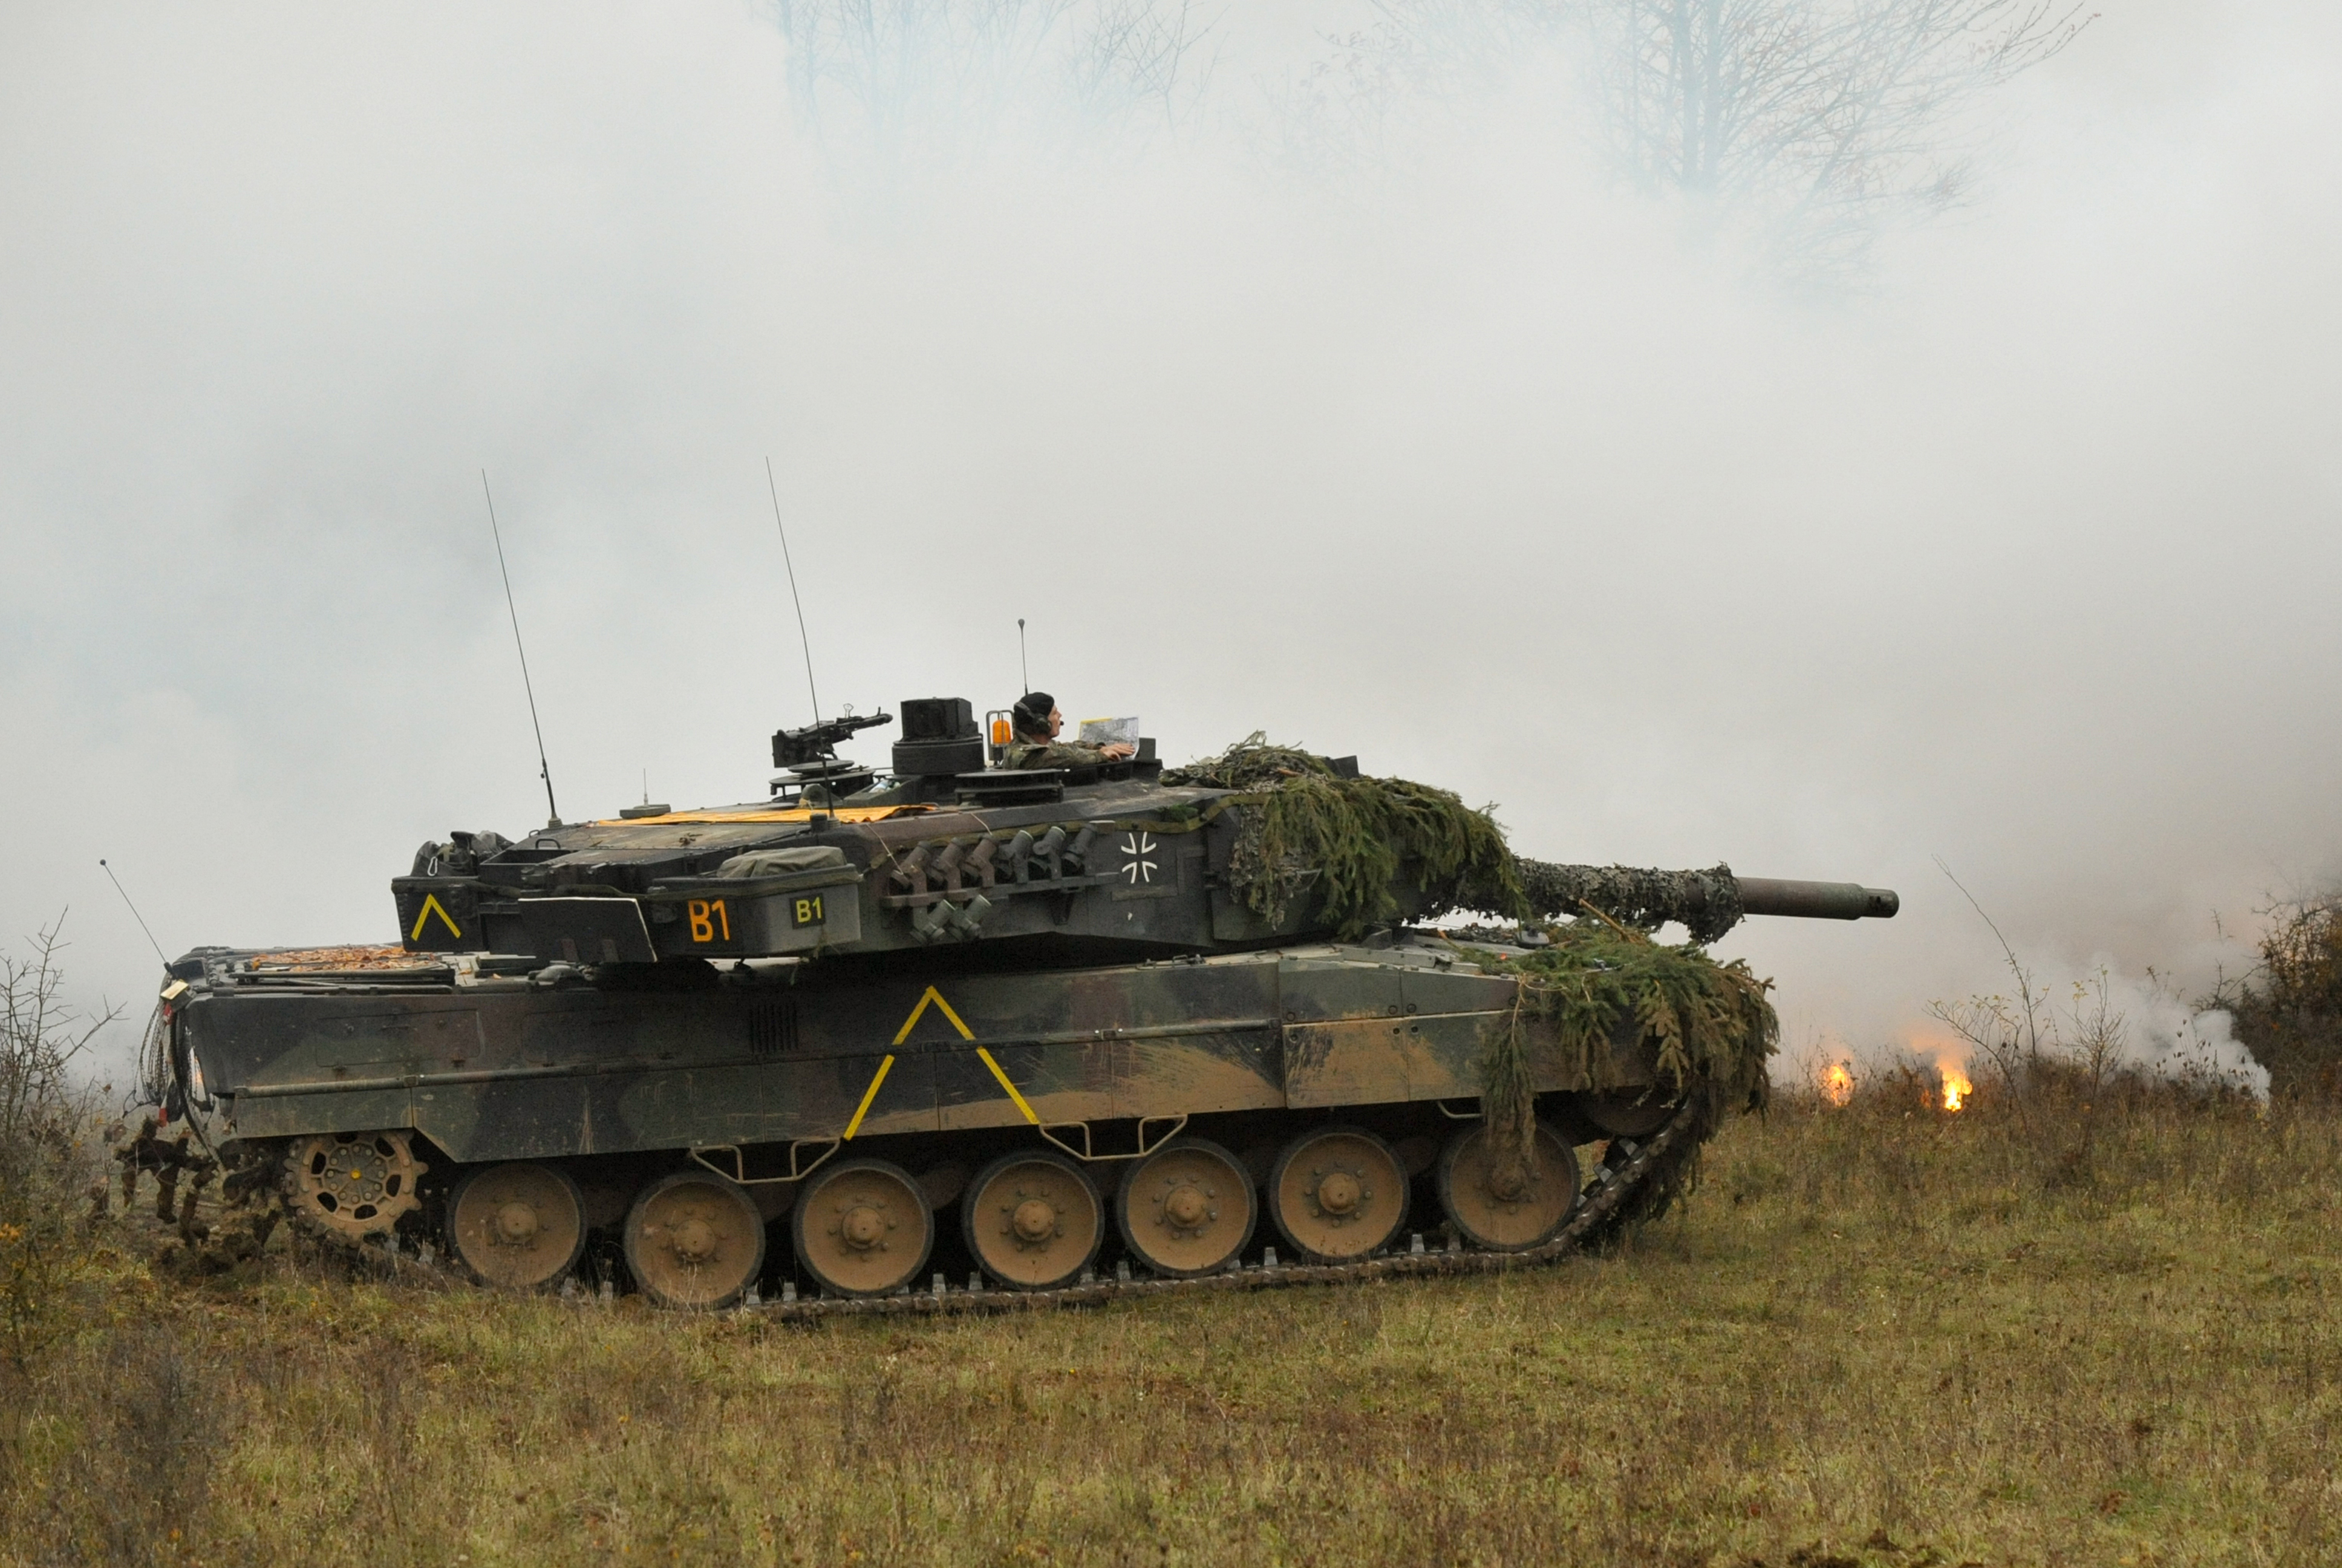 A German Army Leopard II tank, assigned to 104th Panzer Battalion, lays down a cover of white smoke during Saber Junction 2012